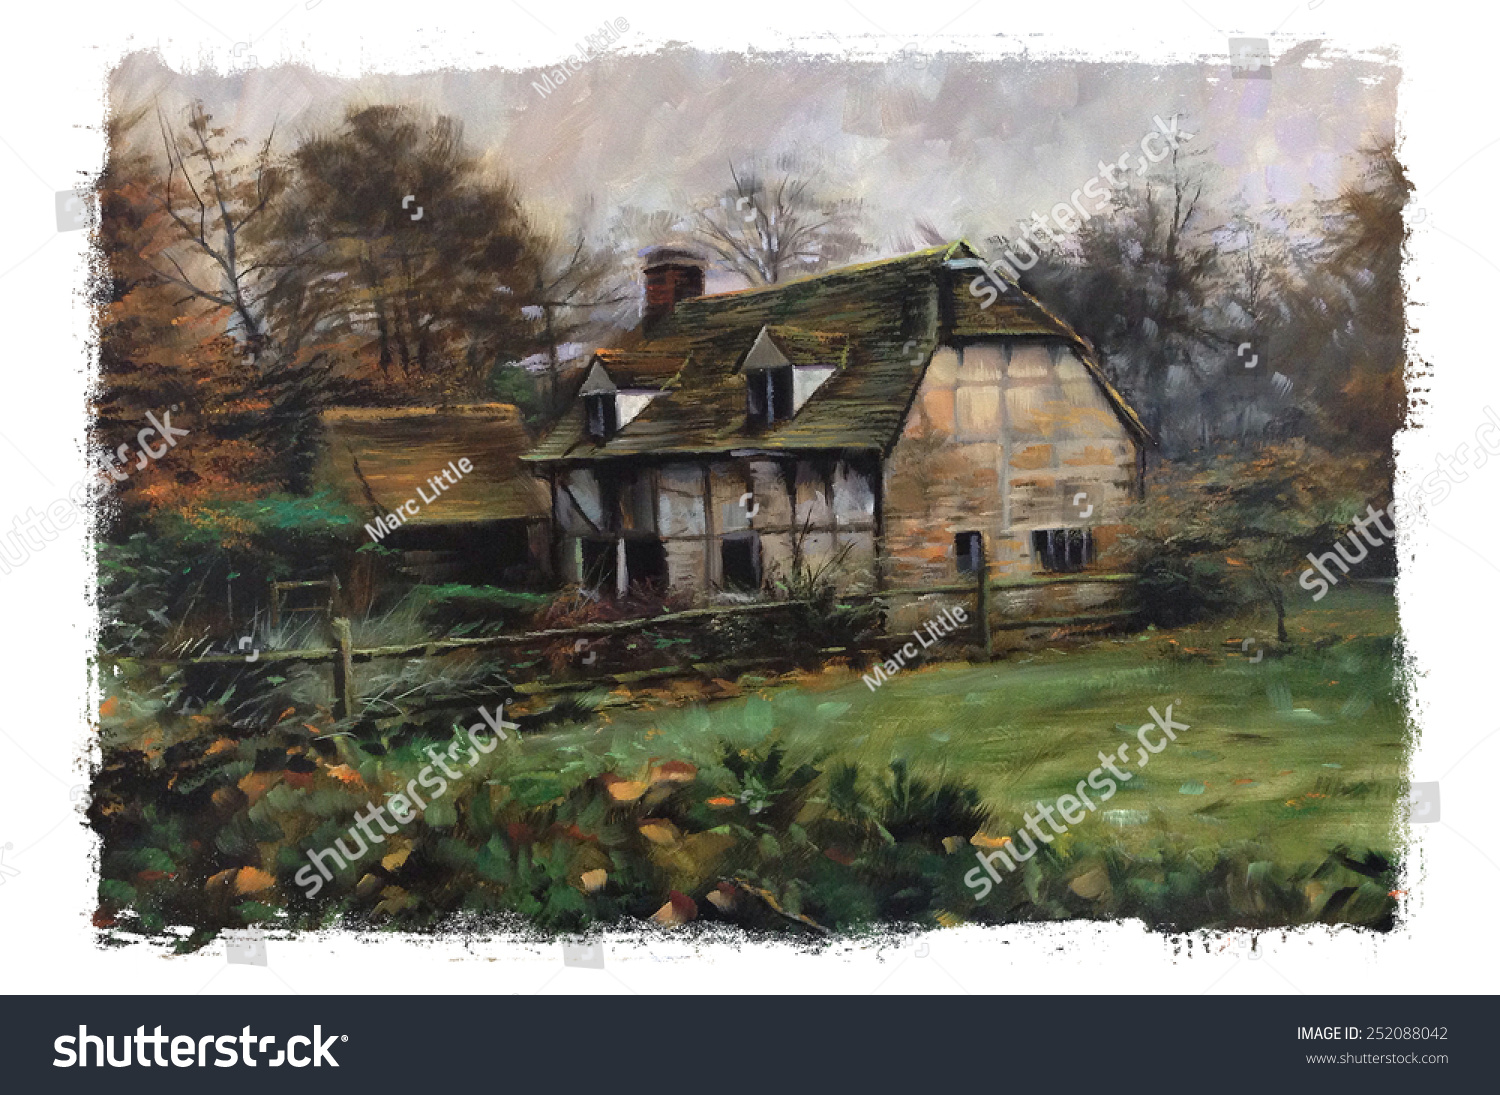 old english cottage pastel watercolor oil stock illustration old english cottage pastel watercolor oil painting art vintage classic artist